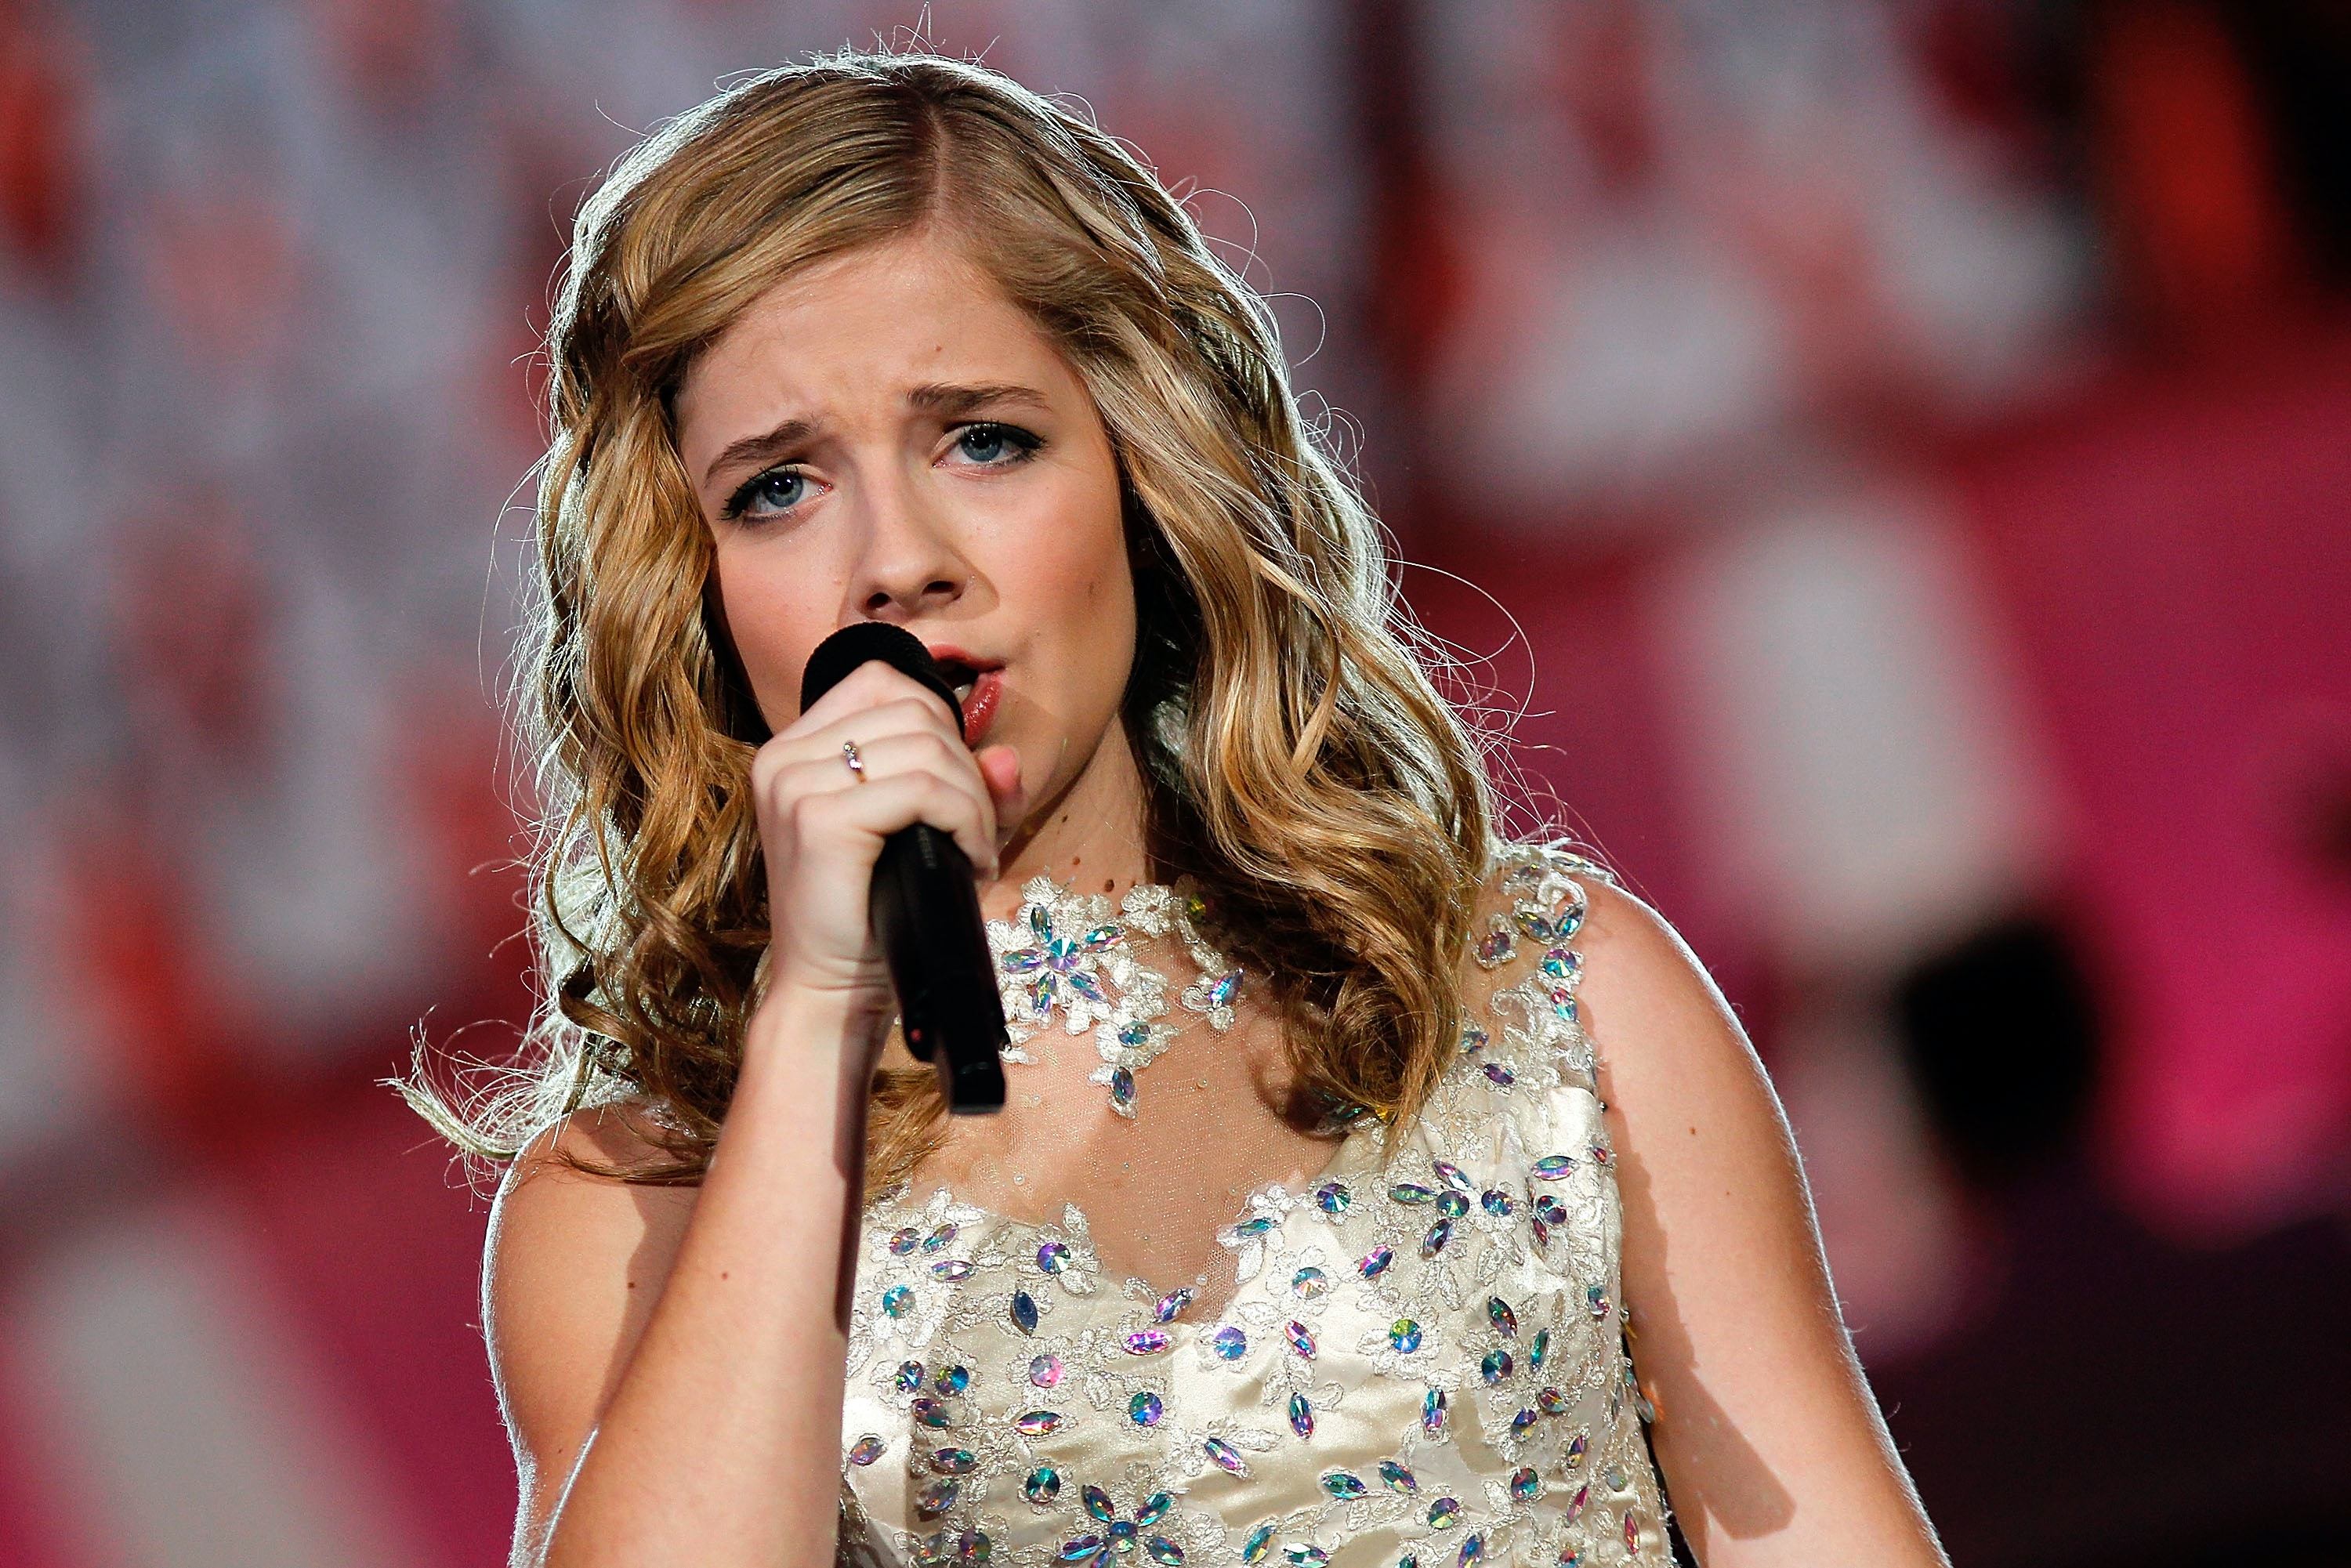 Jackie Evancho's inaugural performance met with mixed reviews